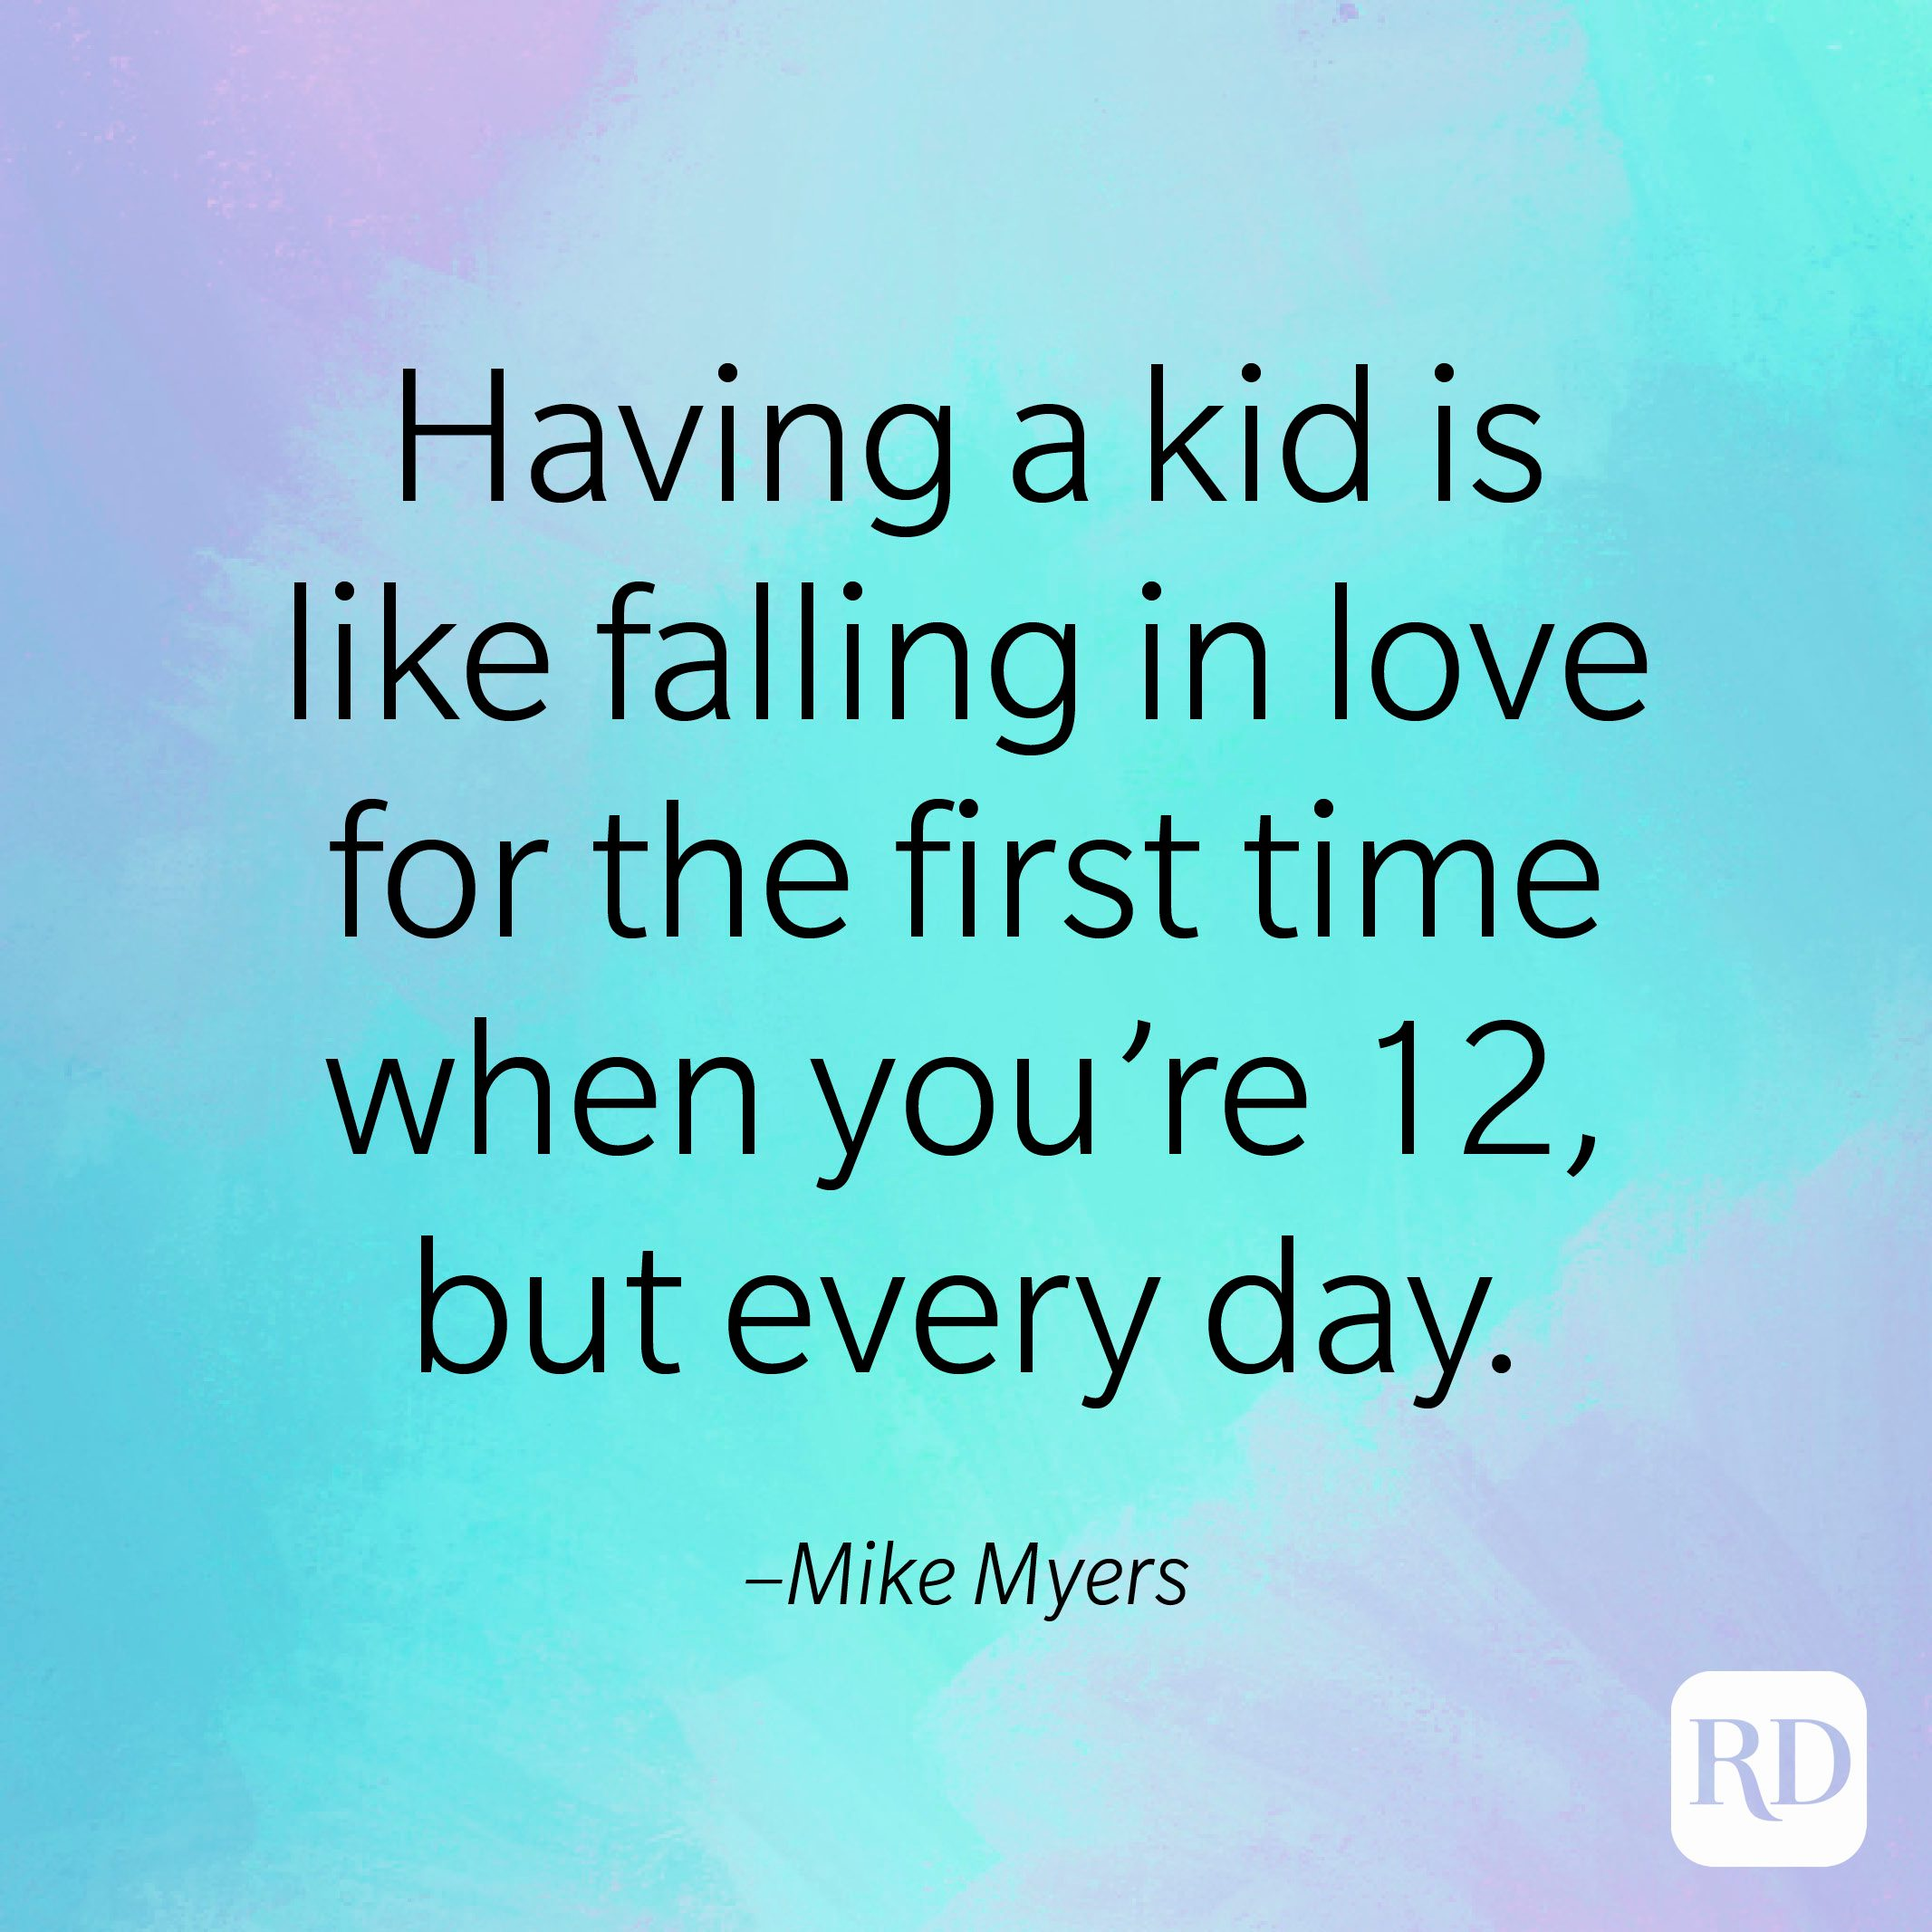 """""""Having a kid is like falling in love for the first time when you're 12, but every day."""" –Mike Myers"""